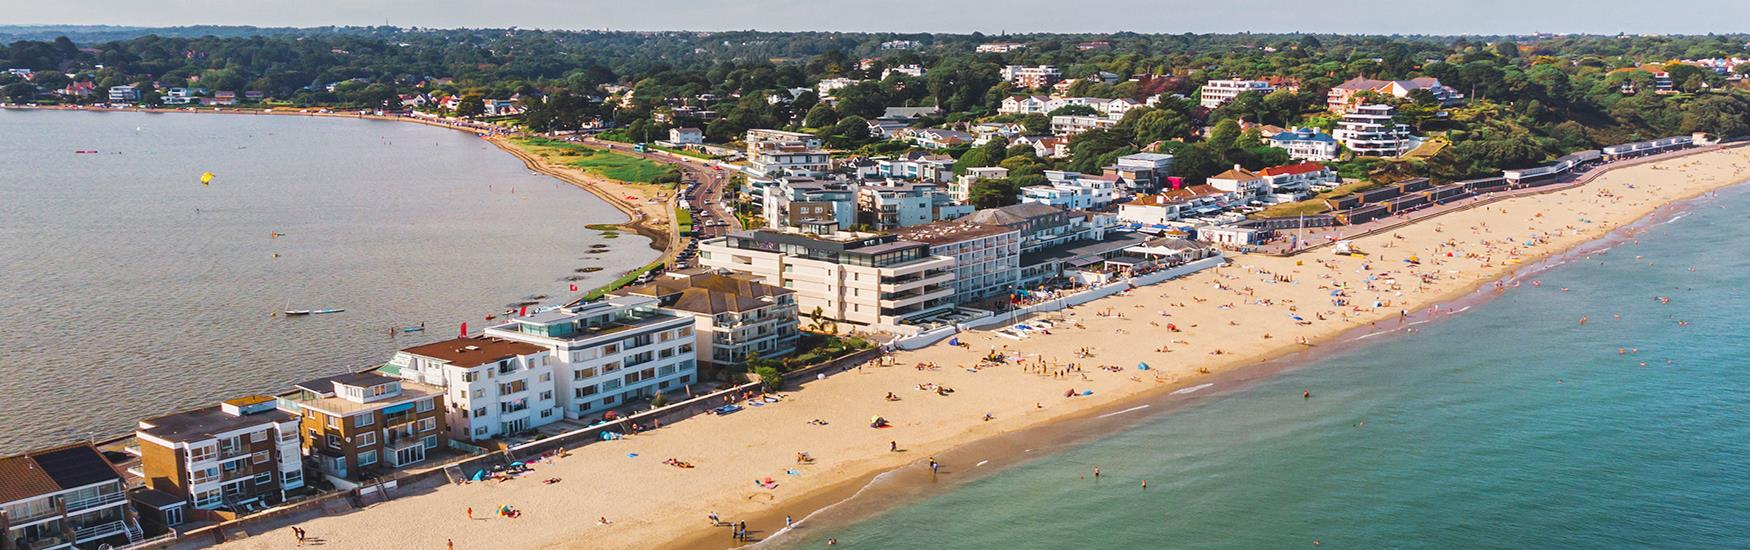 Amazing birds eye shot of an area of Sandbanks beach with visitors lapping up the sun and sea on a lovely sunny day